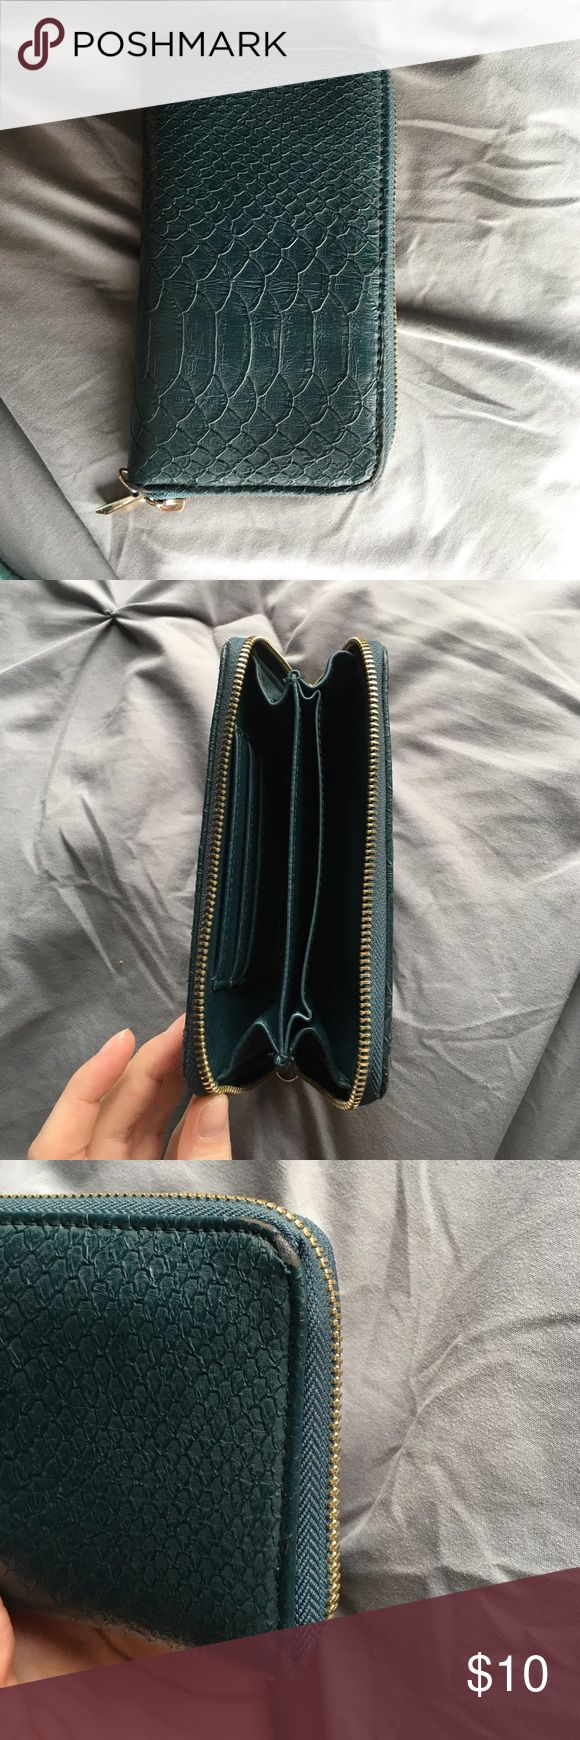 Target brand wallet! Teal wallet from target, almost perfect condition! Target Bags Clutches & Wristlets